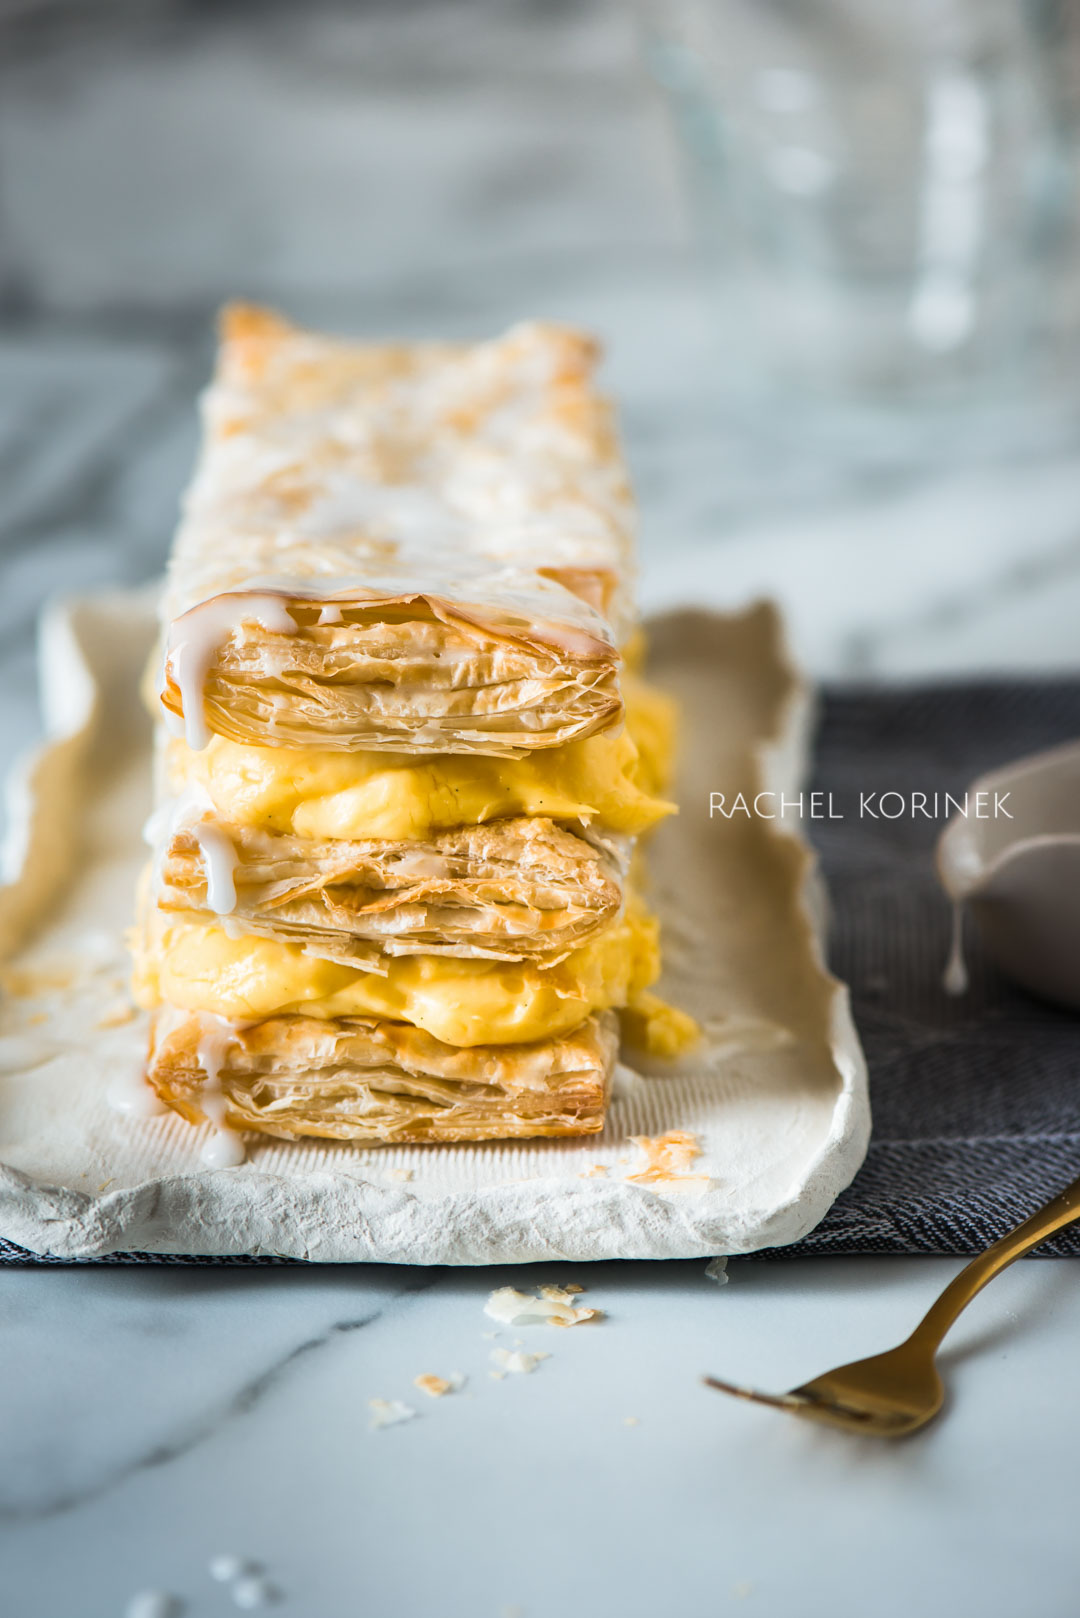 Rachel Korinek Melbourne Food Photographer Vanilla Slice  Click to check out my latest food photography projects.  #twolovesstudio #beautifulcuisine #foodbloggerpro #foodphotography #learnfoodphotography #foodblogger #learnphotography #foodstyling #lightingtips #naturallight #foodphotographer